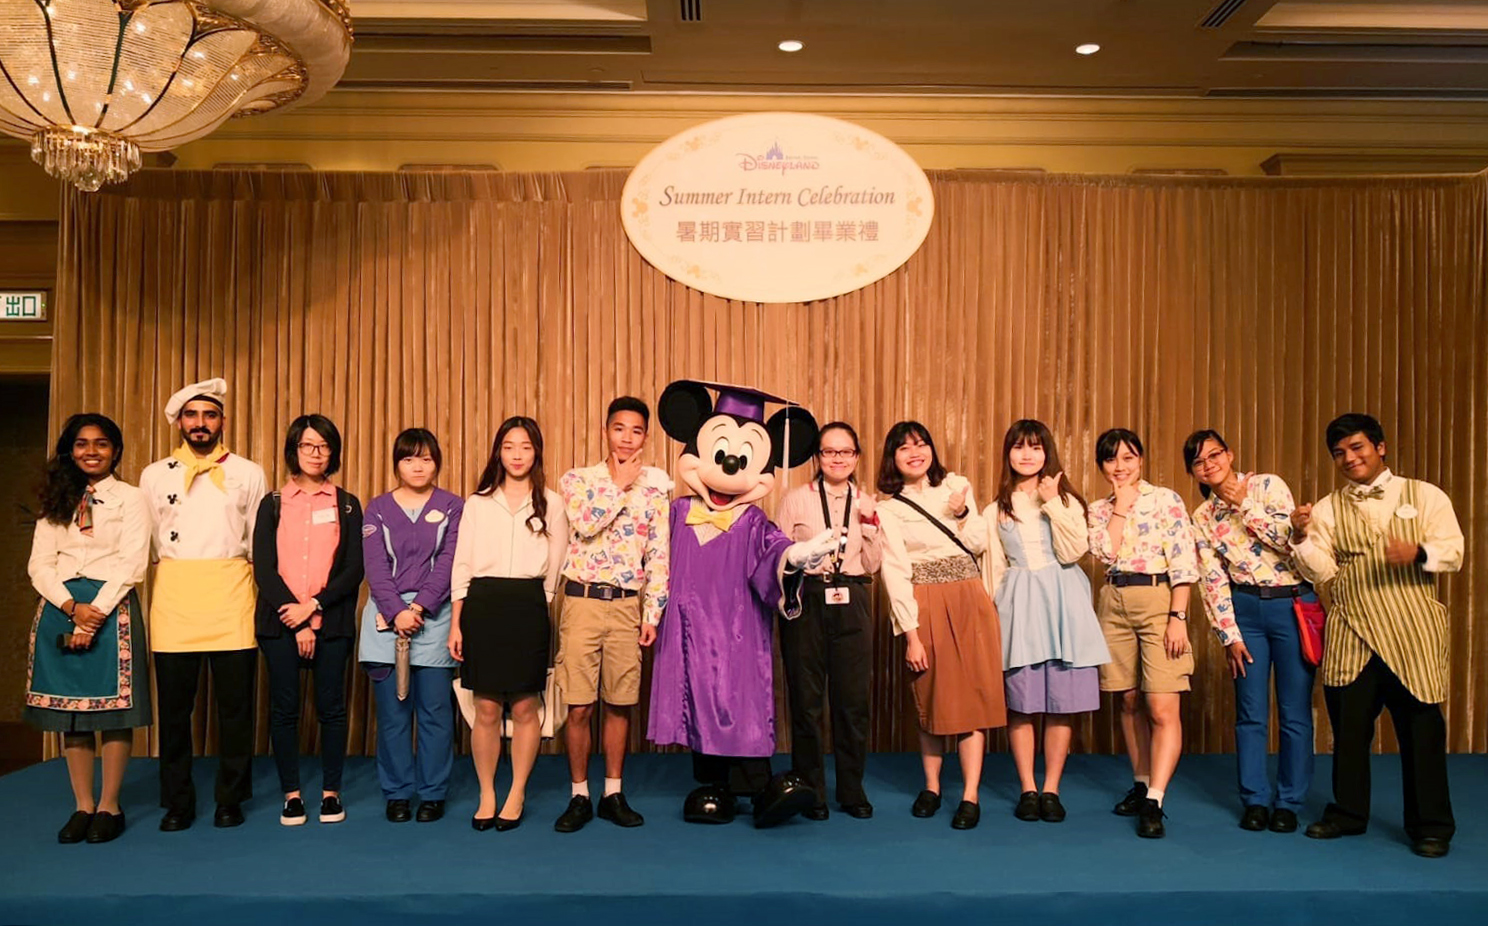 """Summer Intern Celebration"" at Hong Kong Disneyland - Photo - 5"